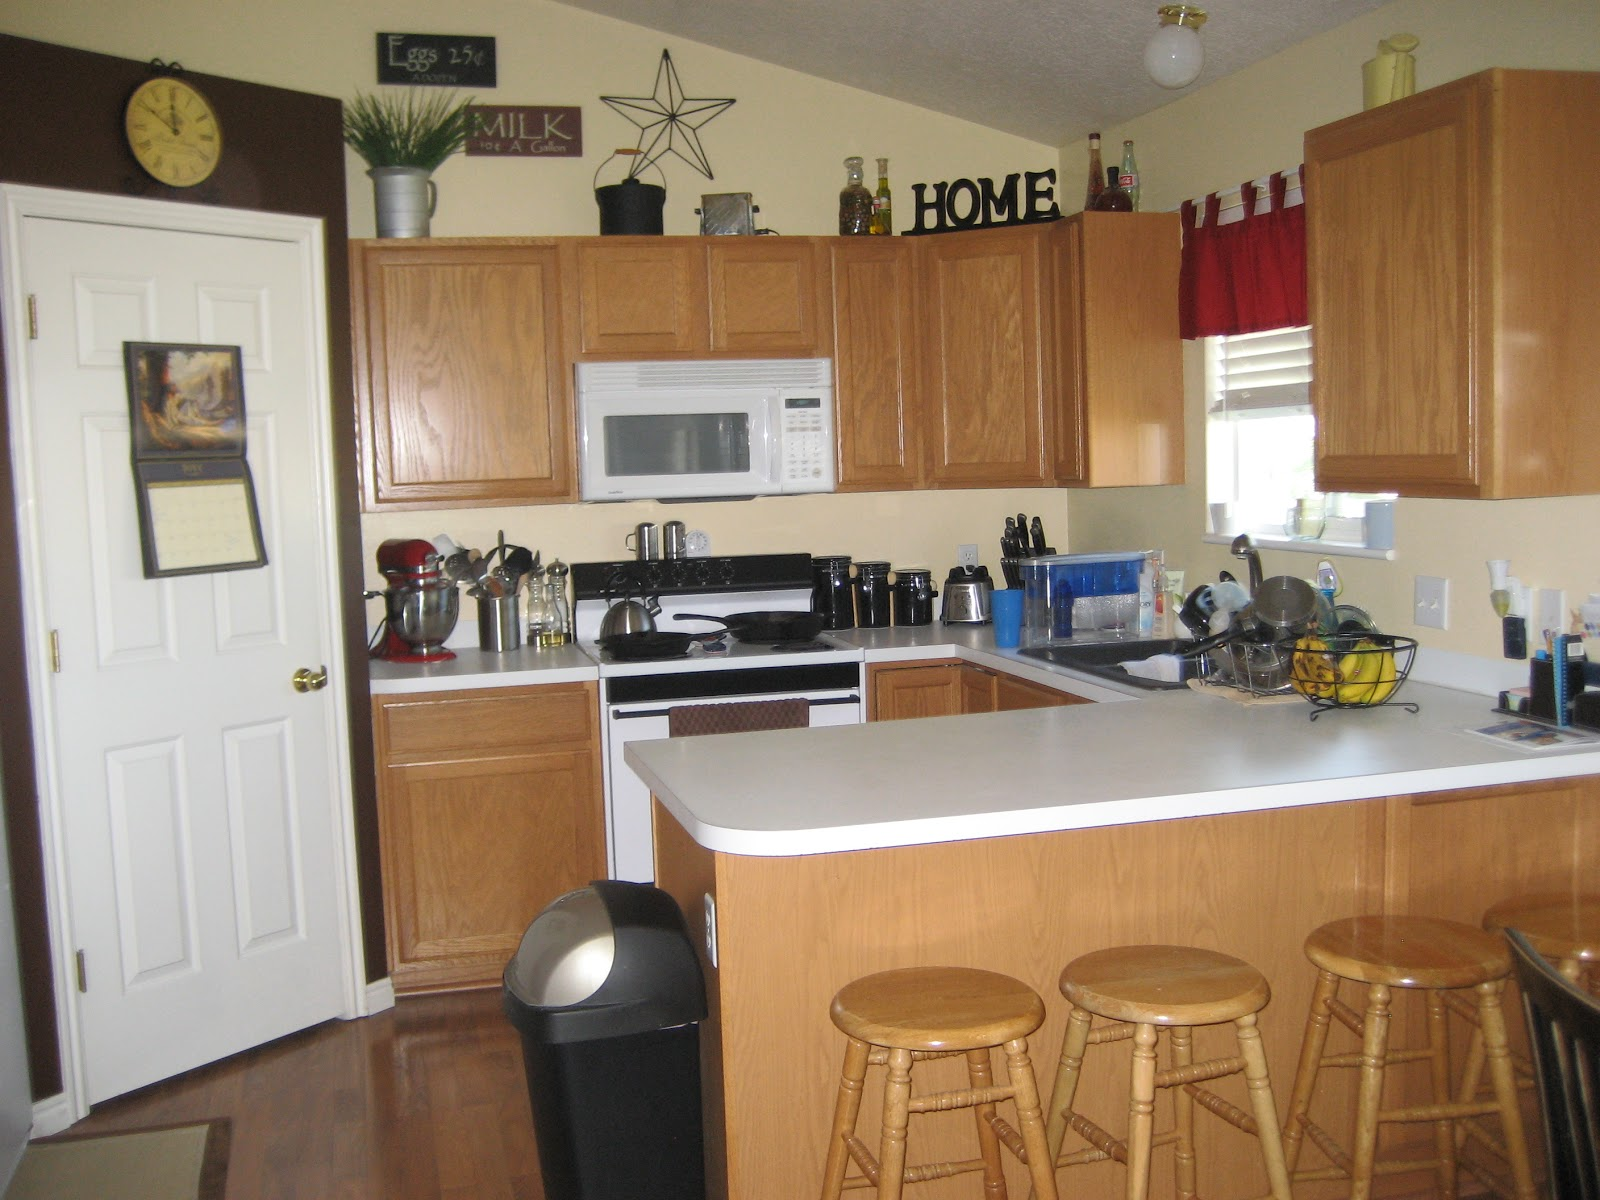 Space Above Kitchen Cabinets Inspiration Photo Gallery